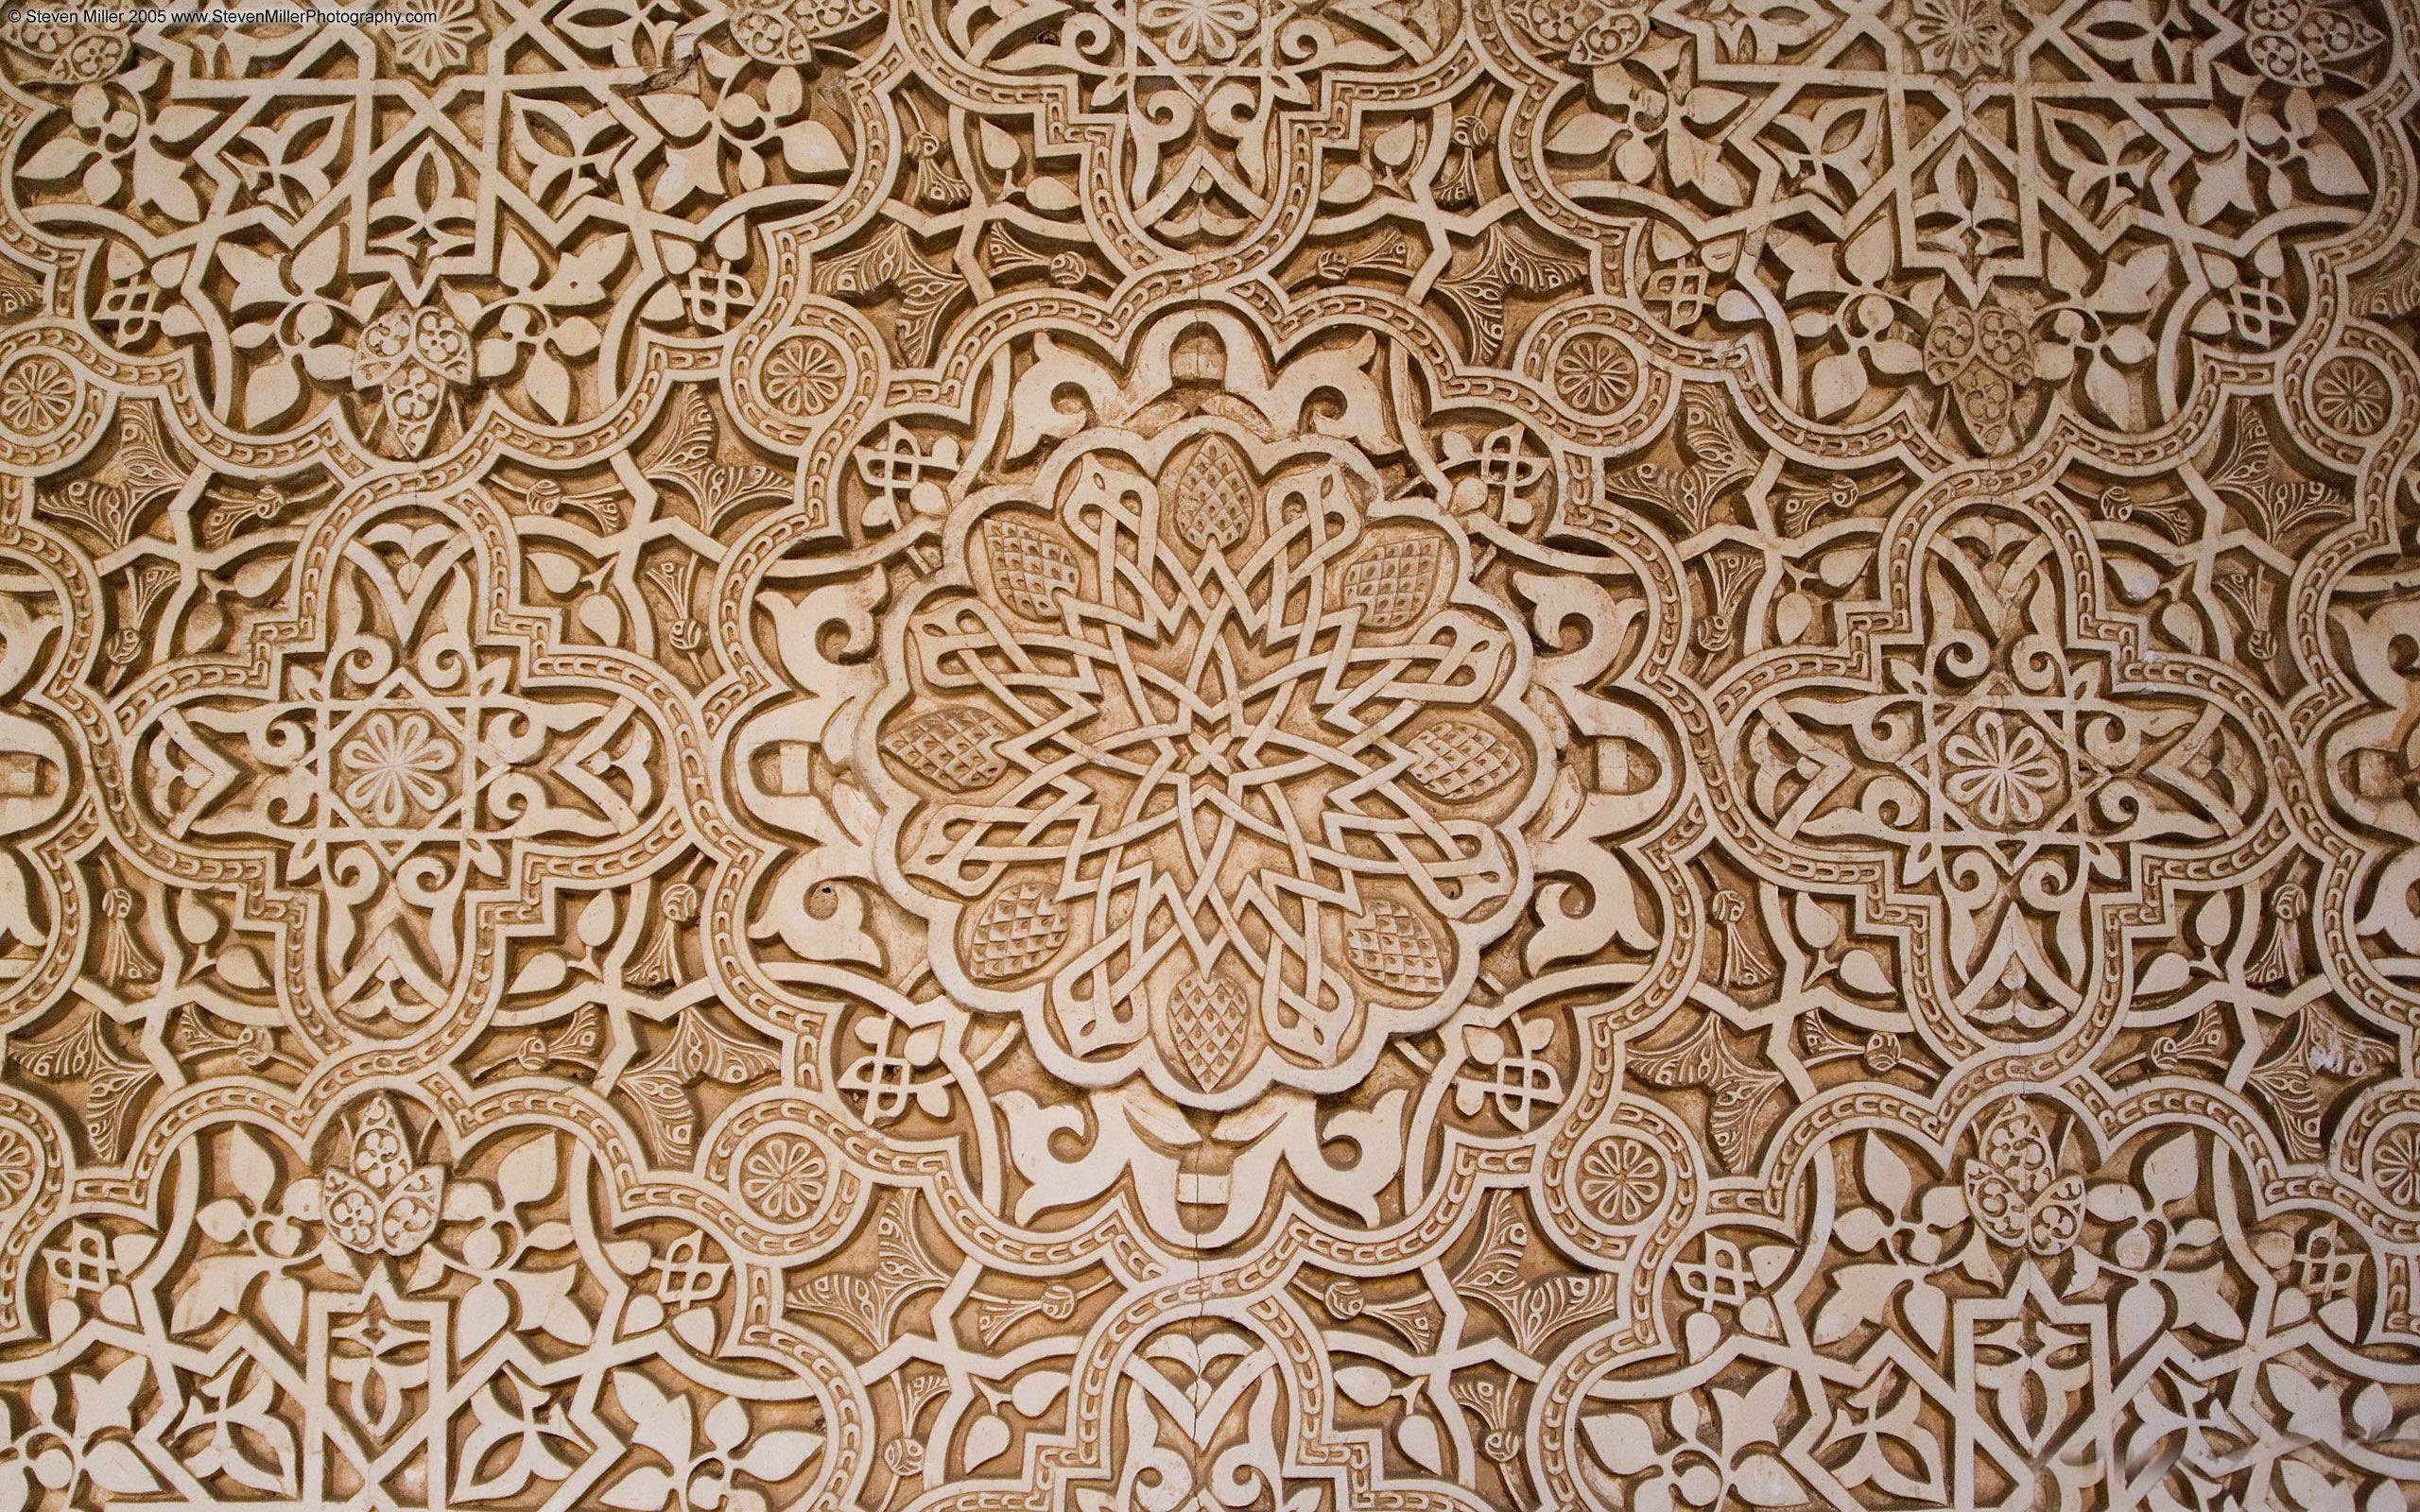 for Arabesque style decoration